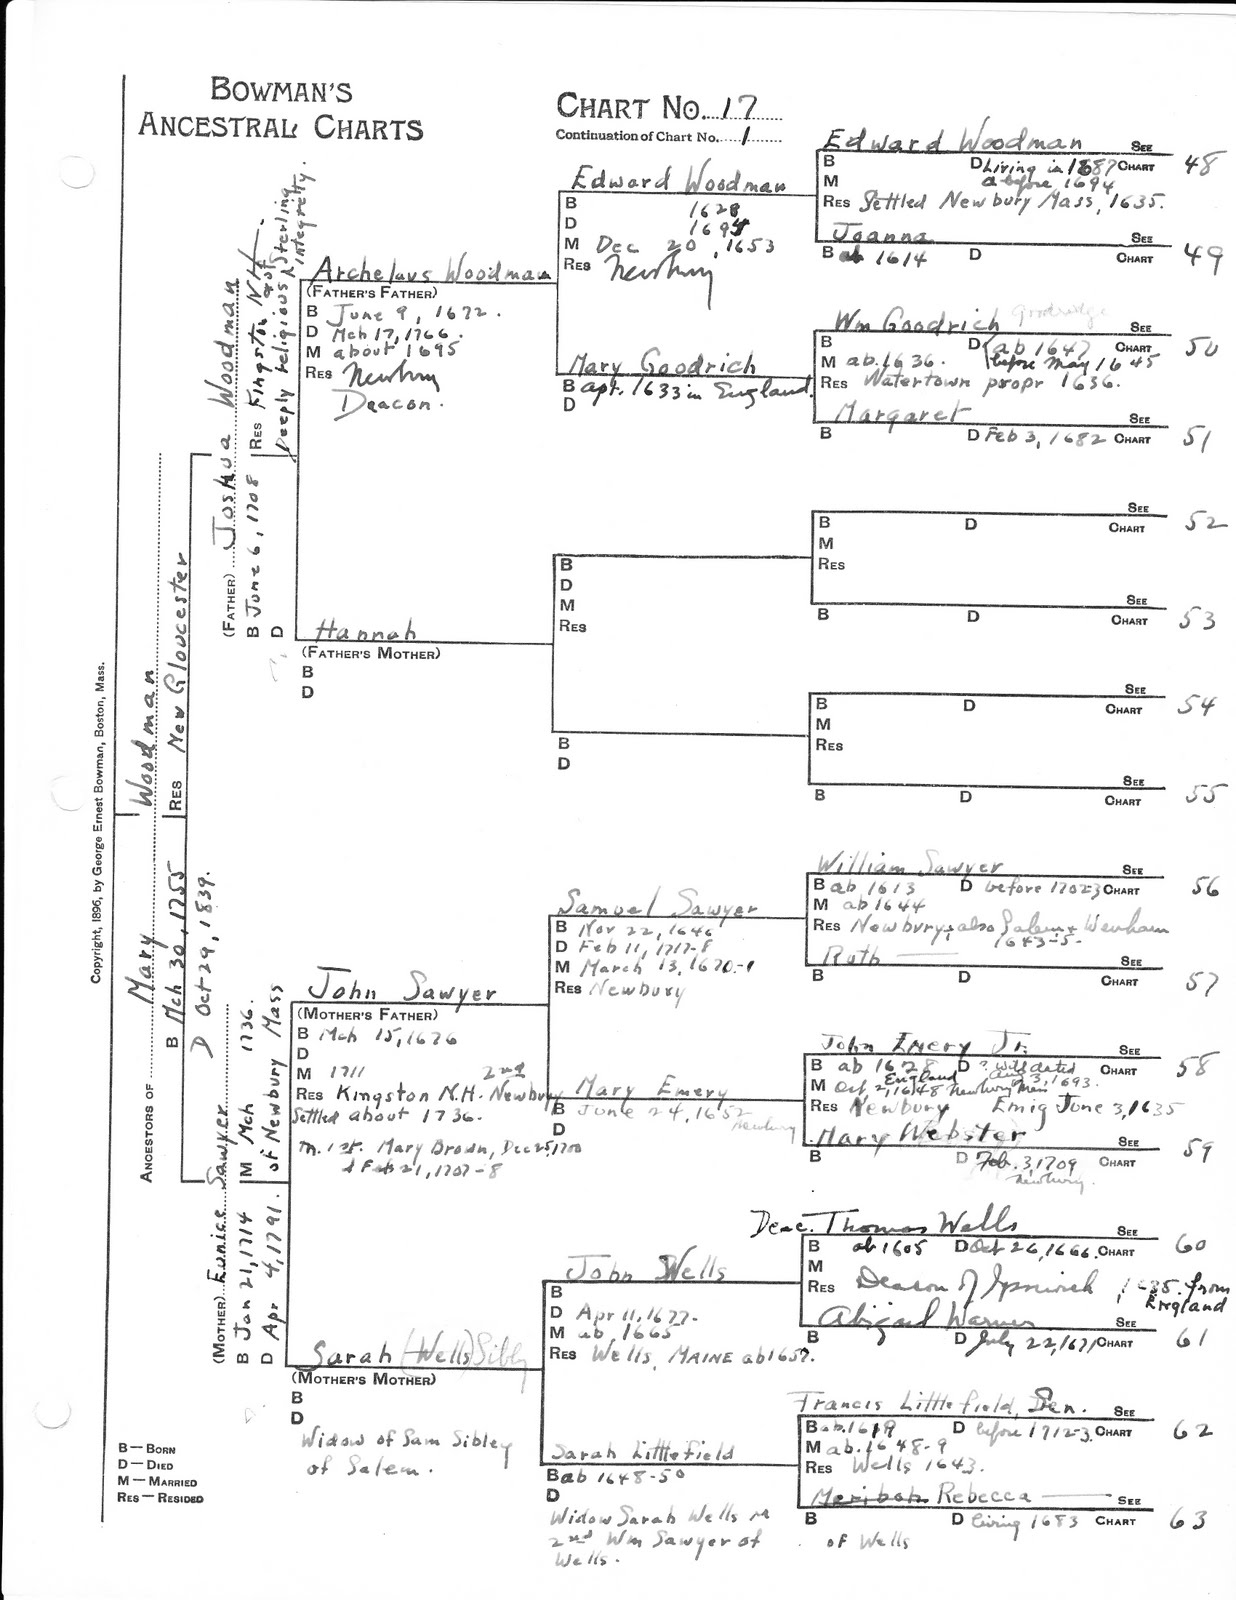 will s genealogy blog merrill haskell family ancestral chart 17